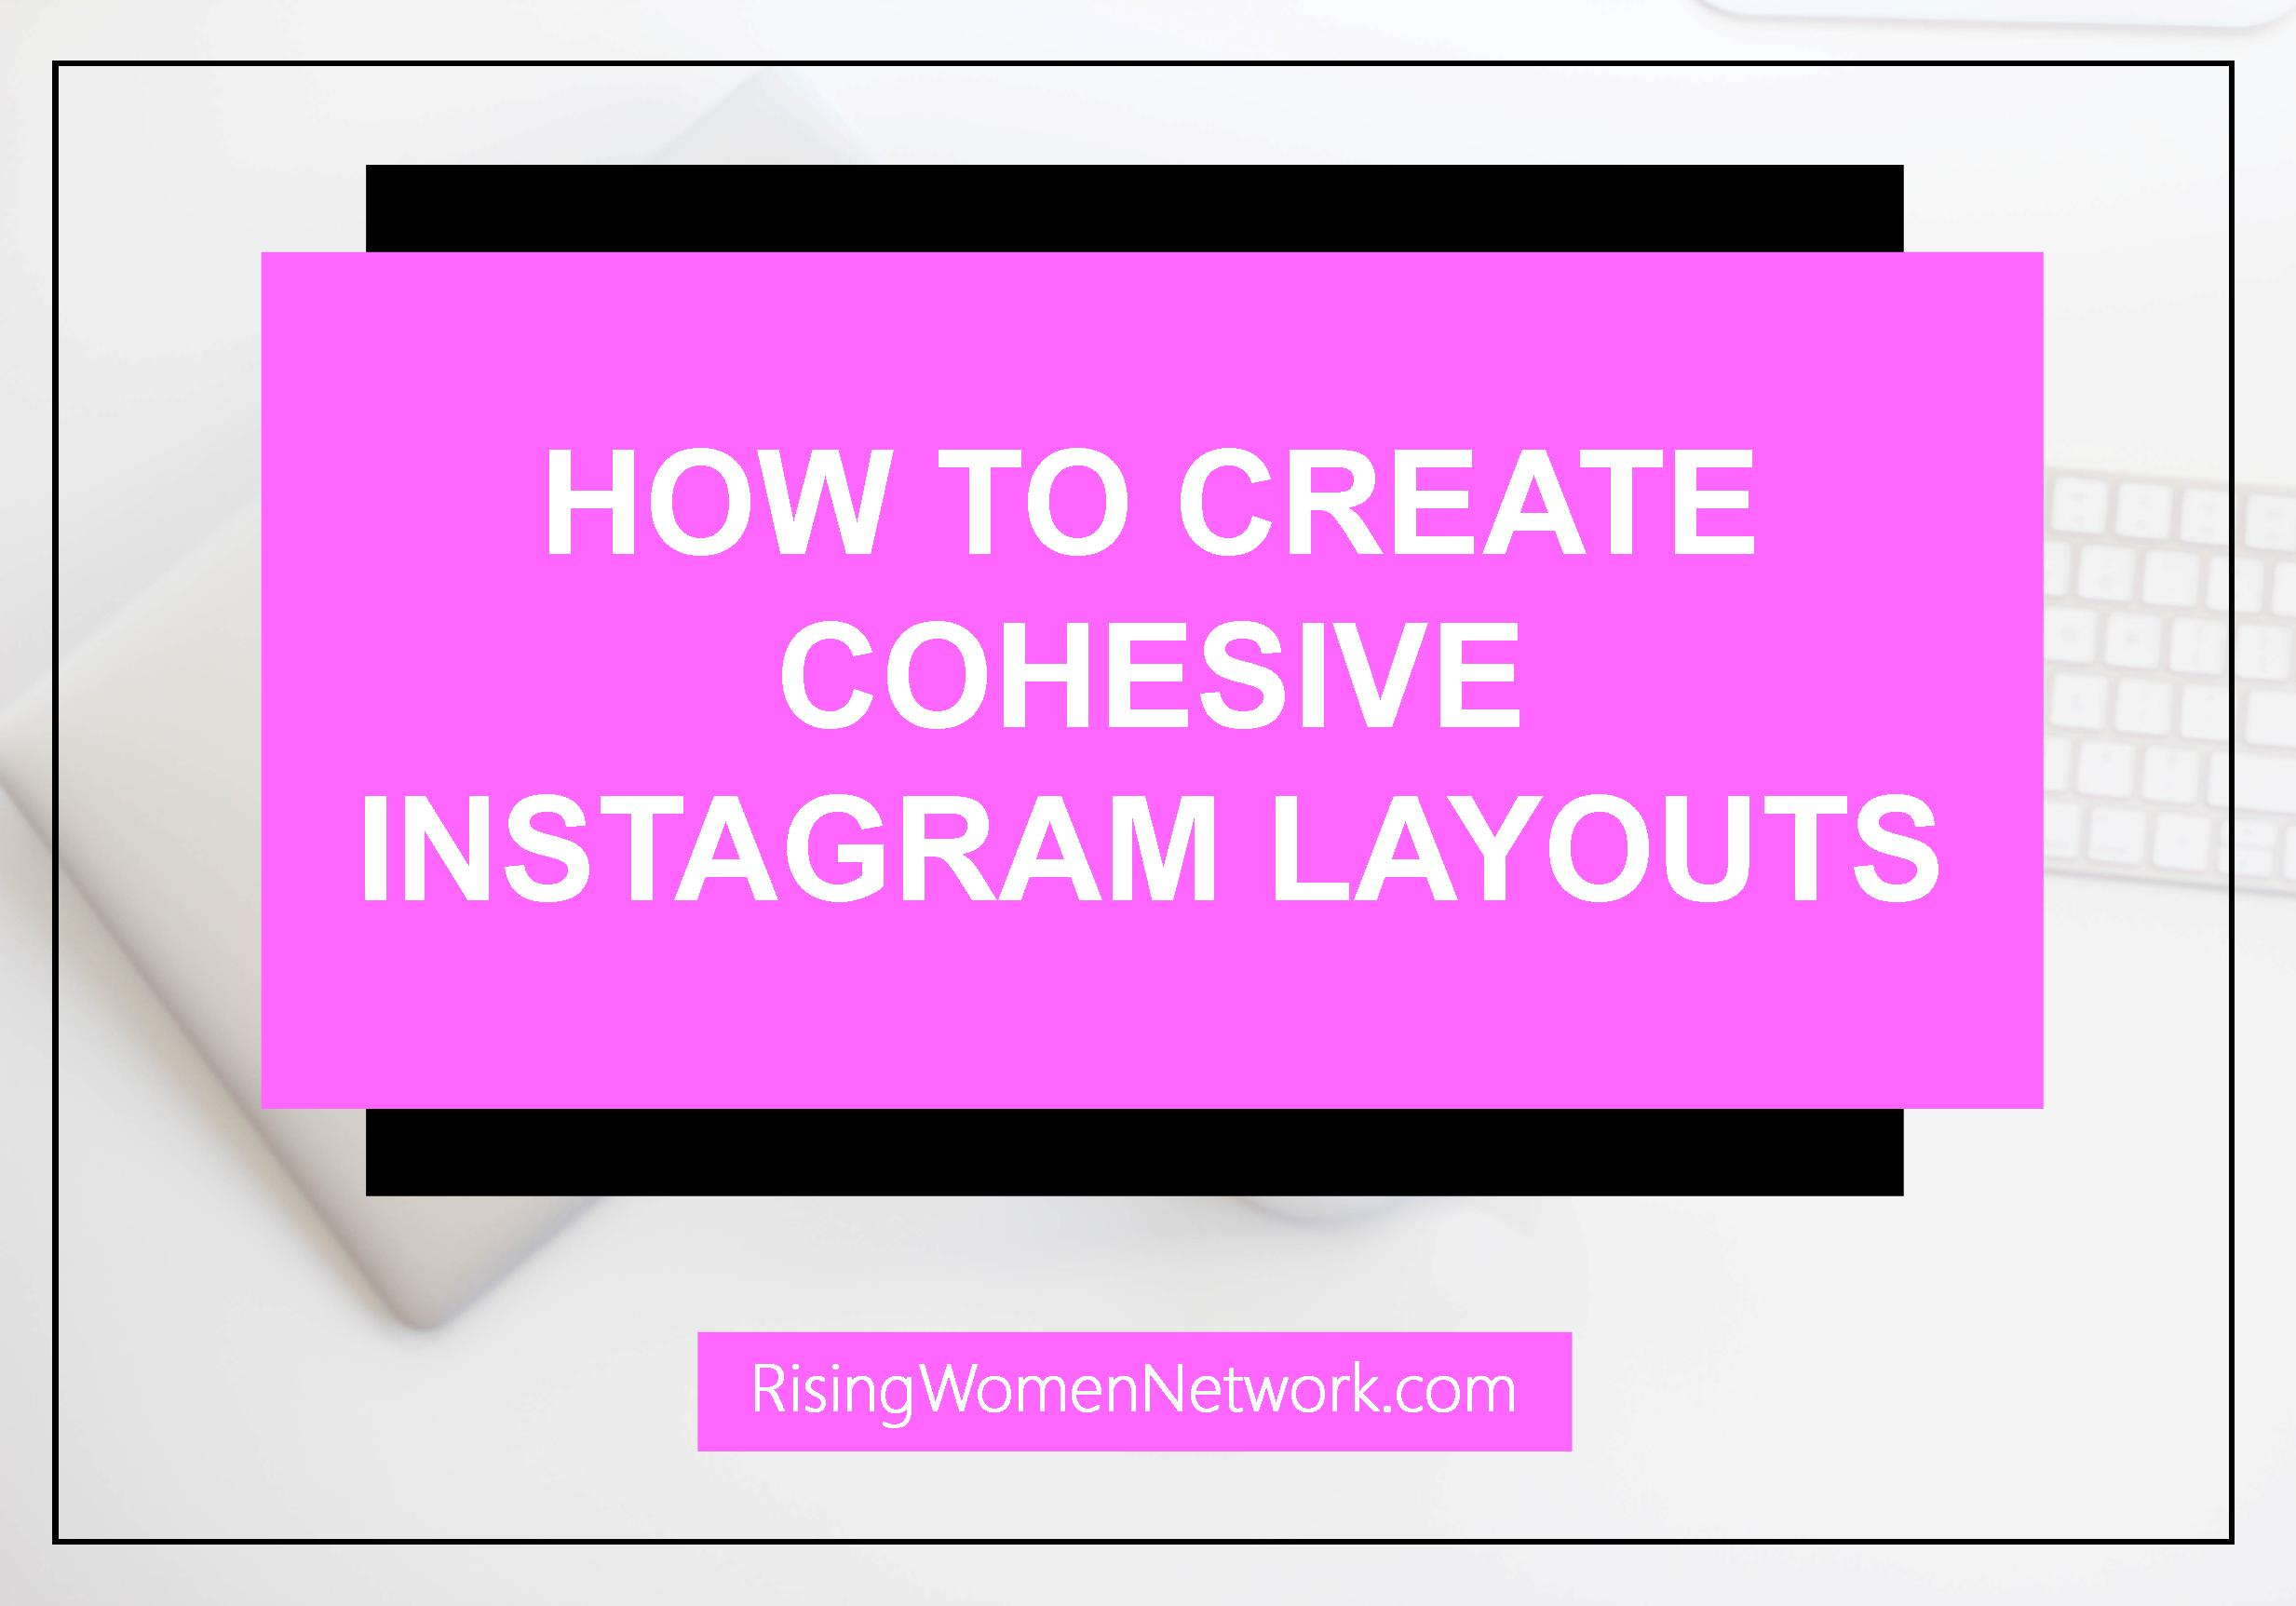 Instagram layouts are important because having a cohesive, consistent Instagram feed not only looks fabulous but will help grow your following as well.